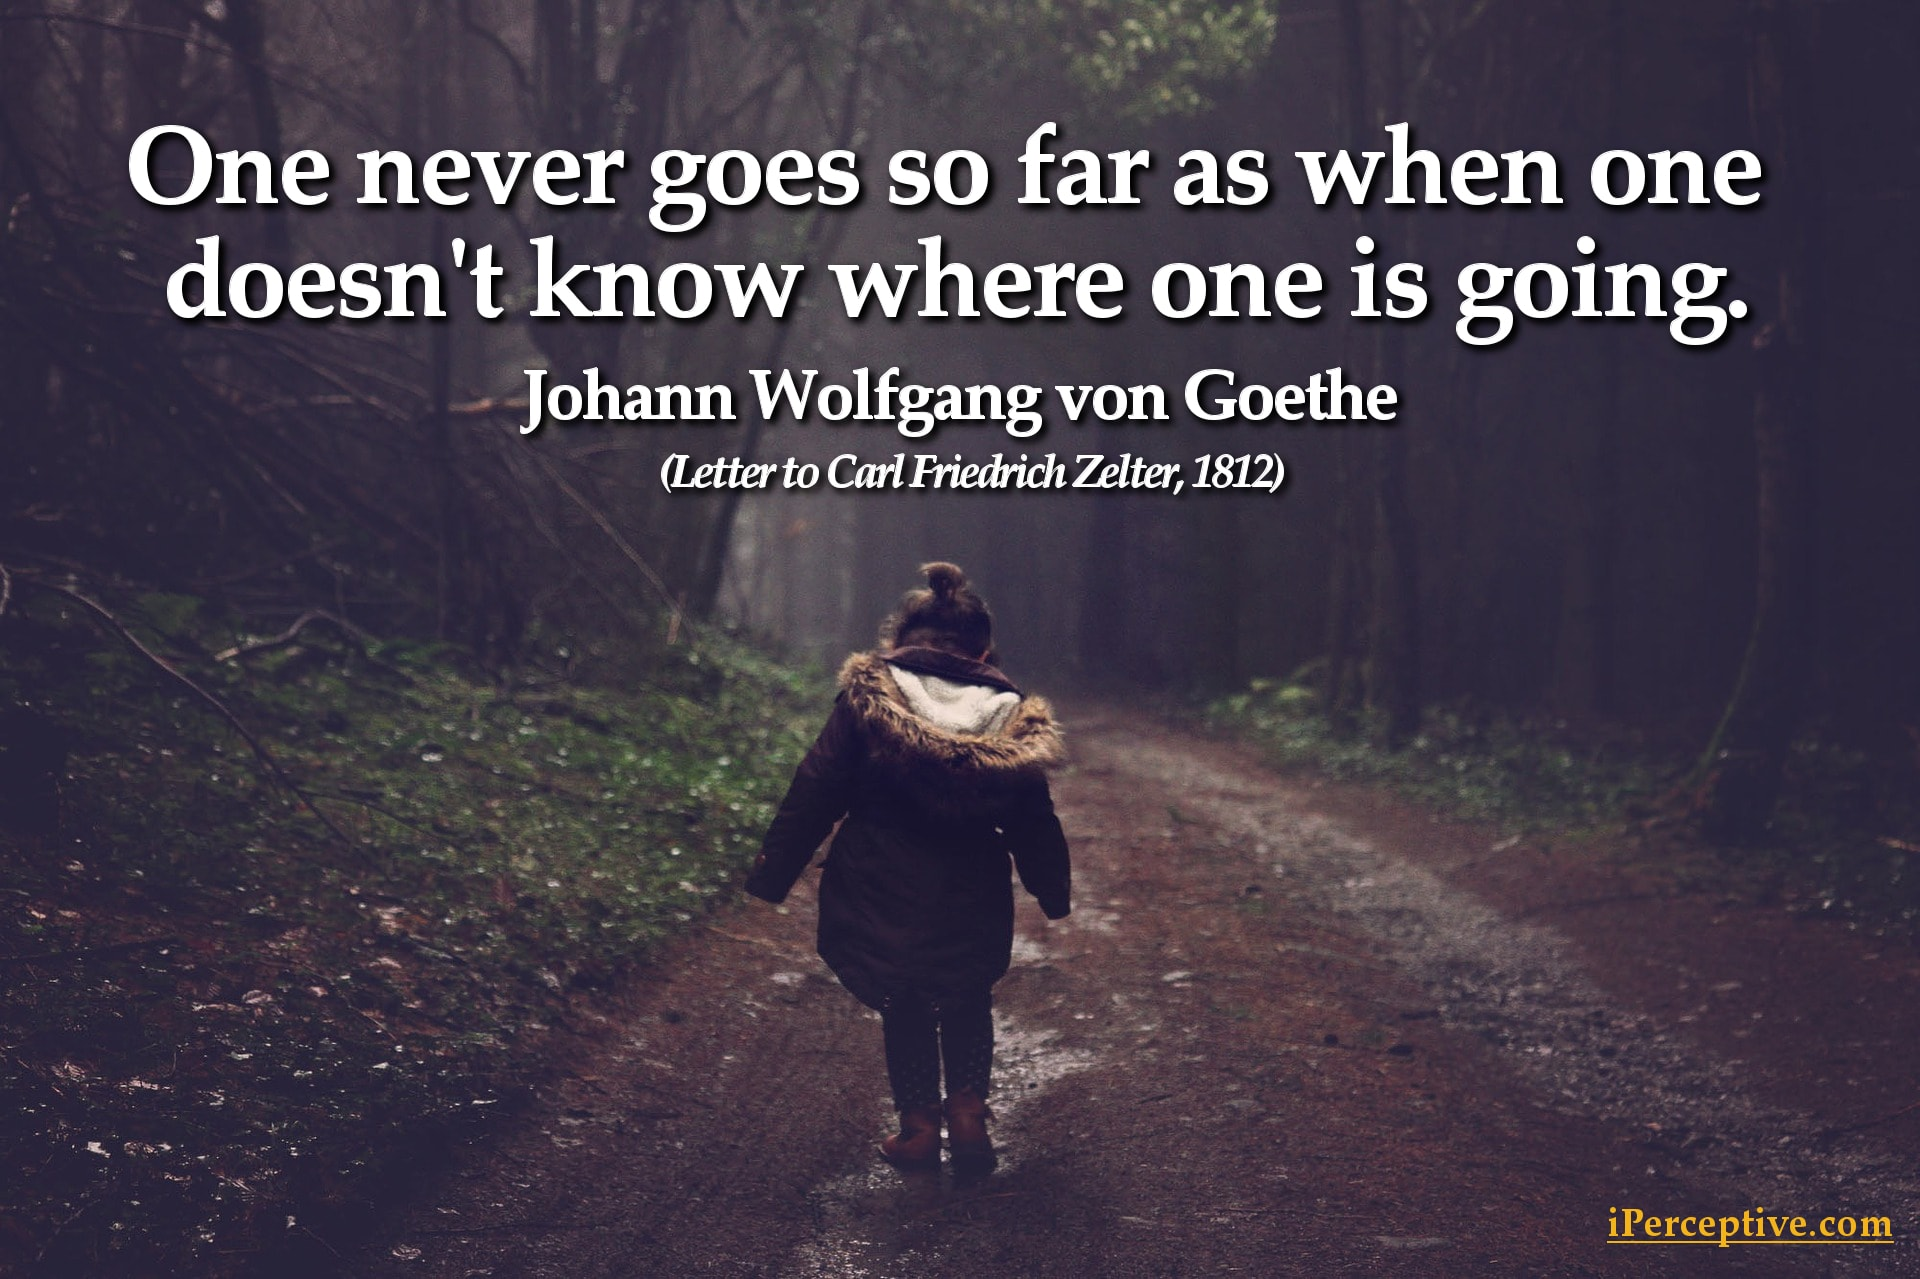 Goethe Life Quote: One never goes so far as when one doesn't know...